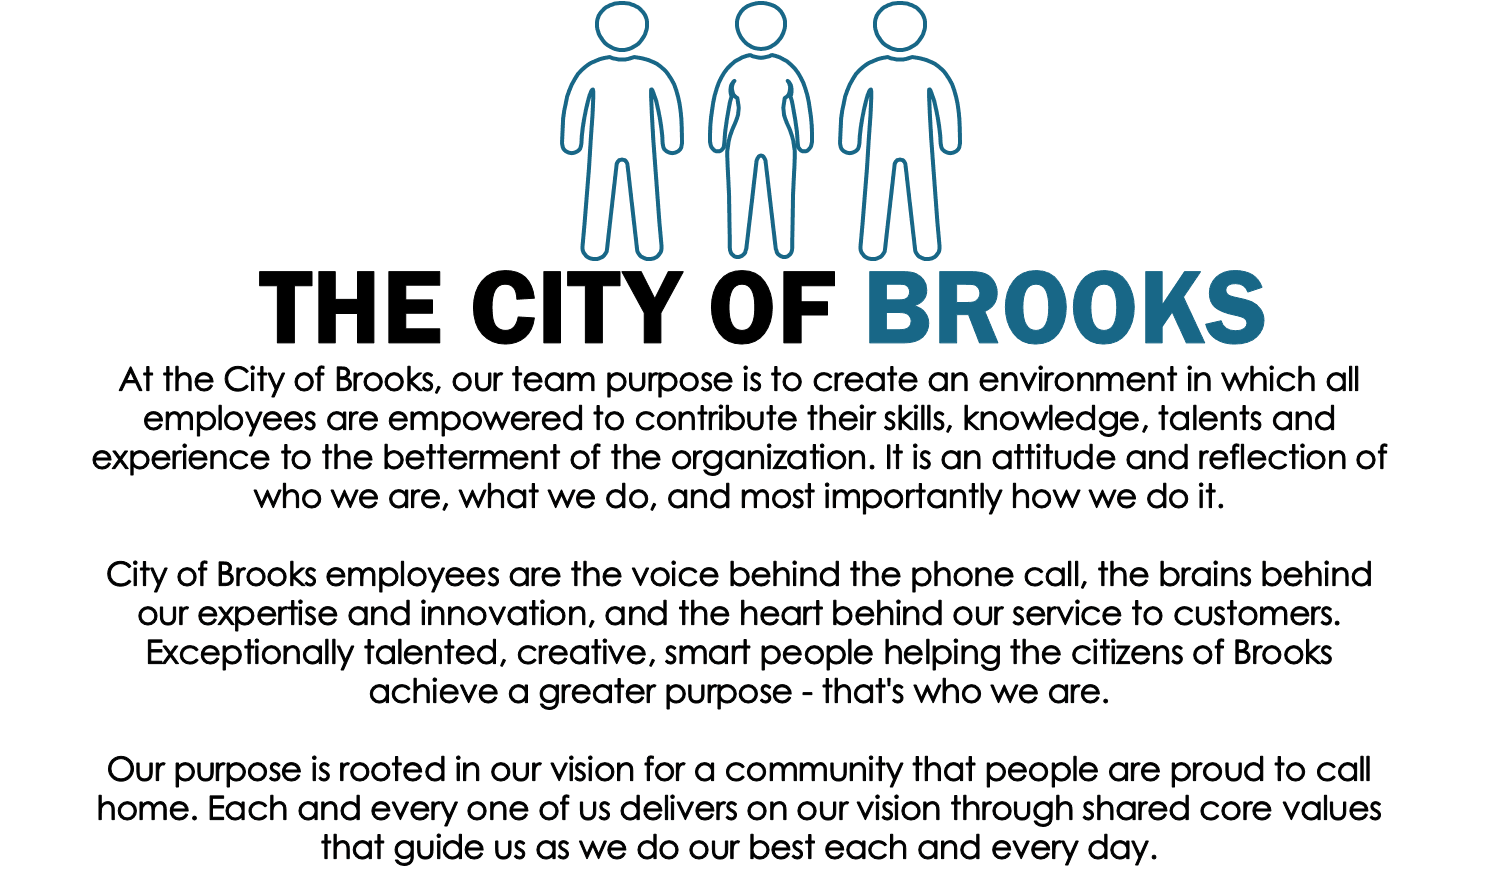 A description of the culture and purpose of the staff of the City of Brooks